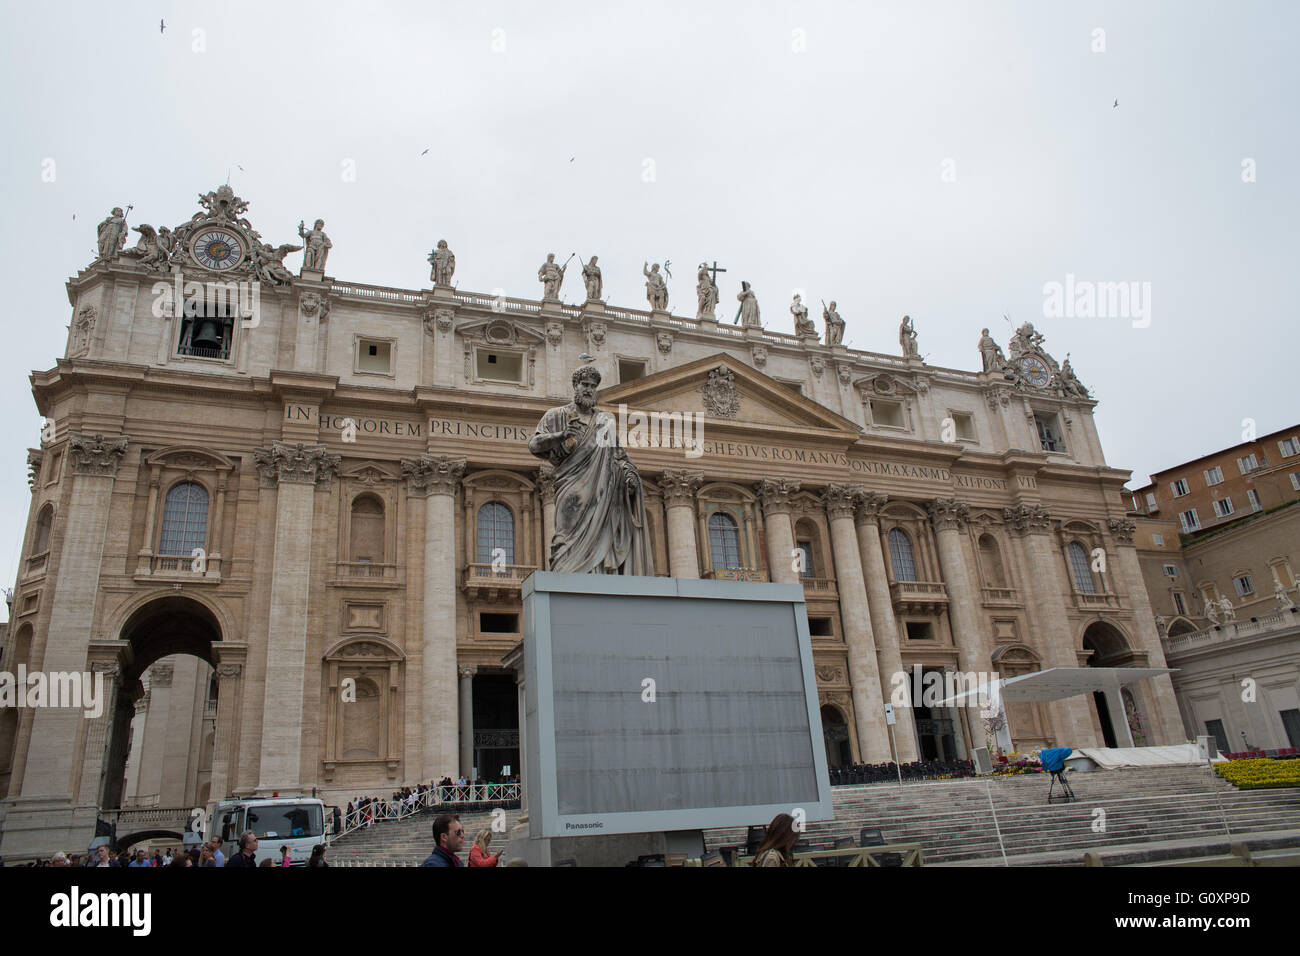 St Peters basilica, Rome, Italy - Stock Image